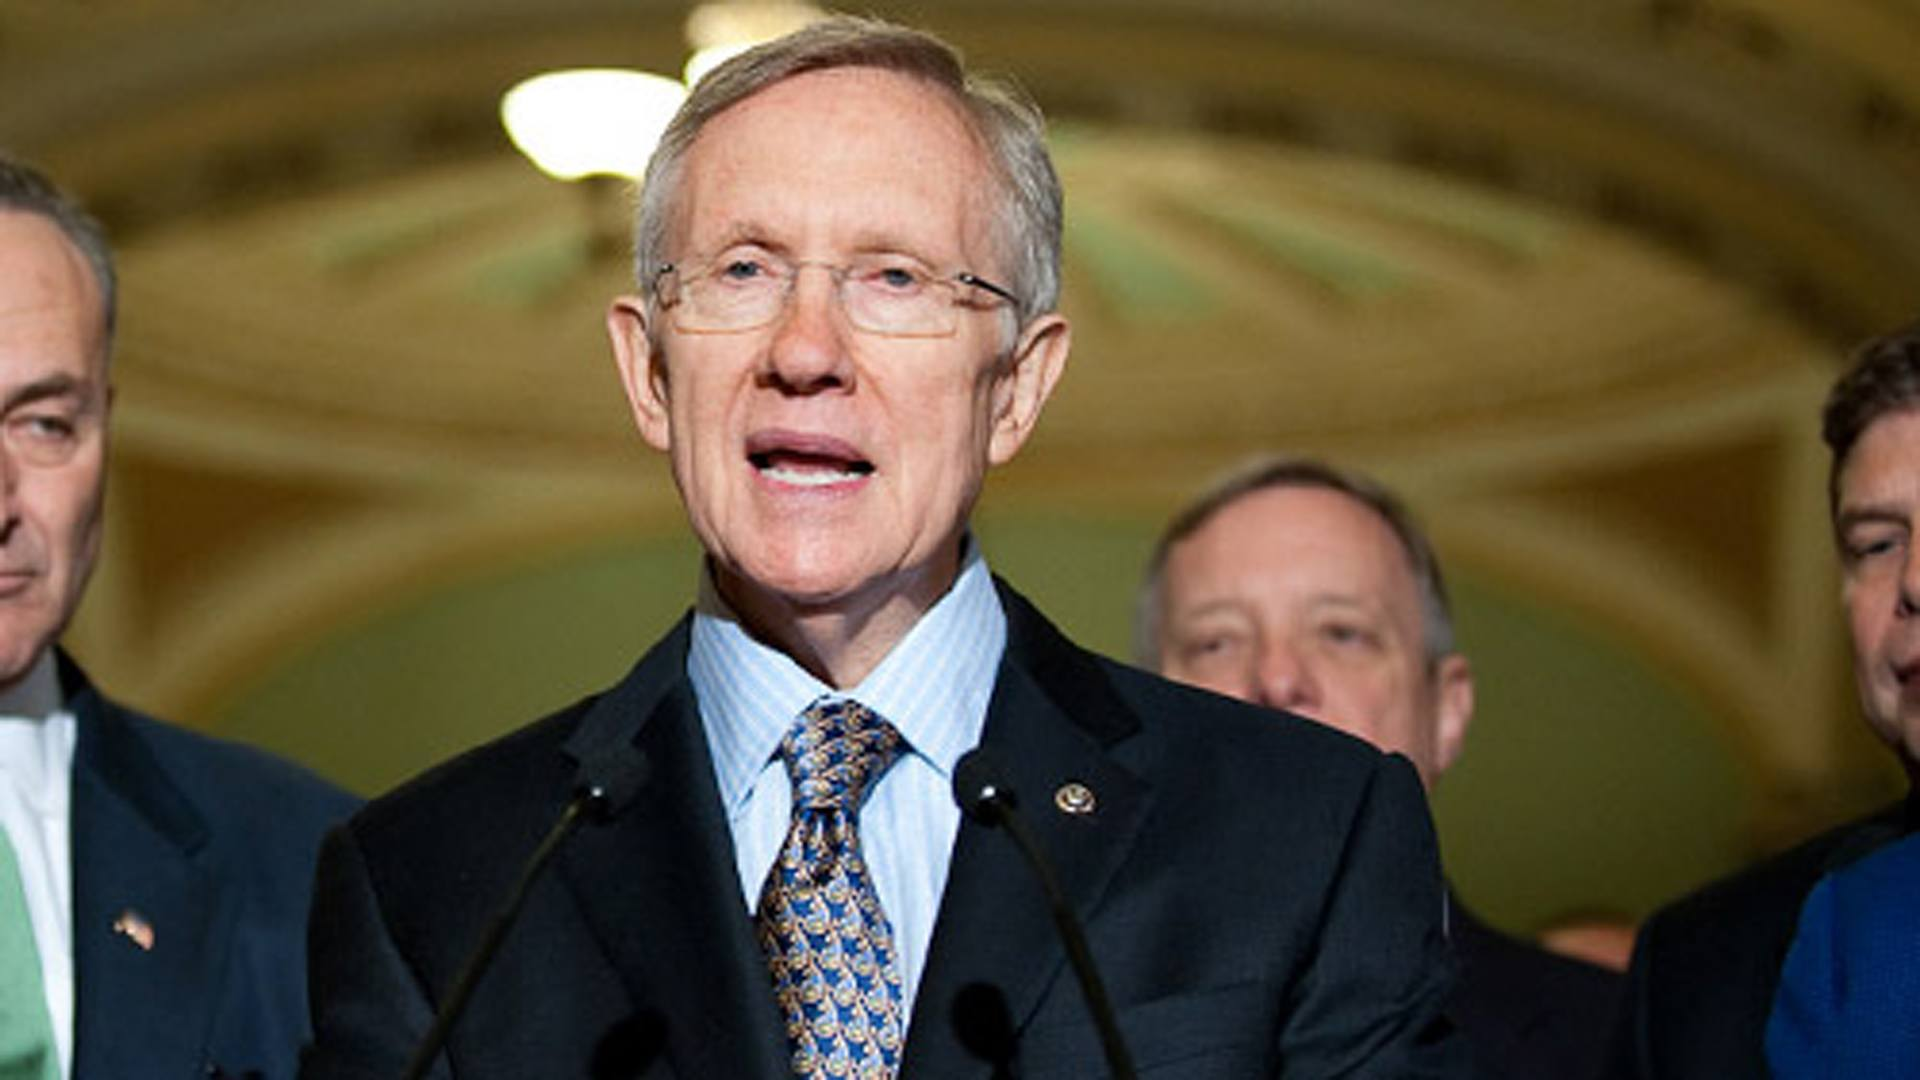 Harry Reid Sheldon Adelson RAWA 2015